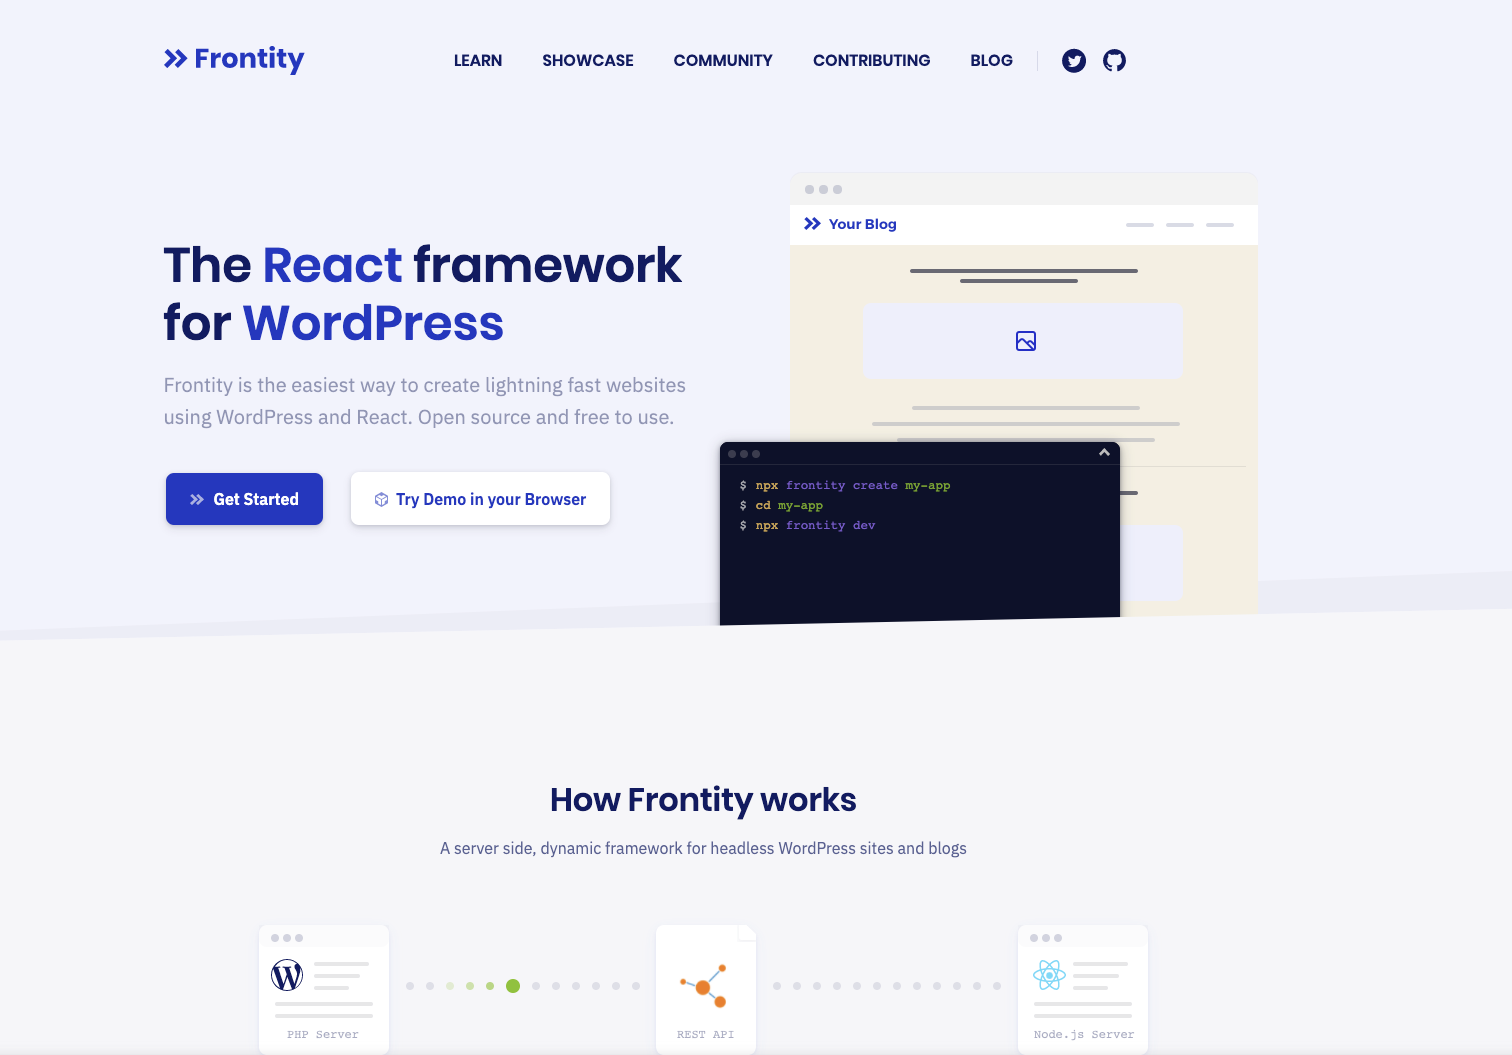 Frontity, a headless CMS, has been acquired by the WordPress parent company.